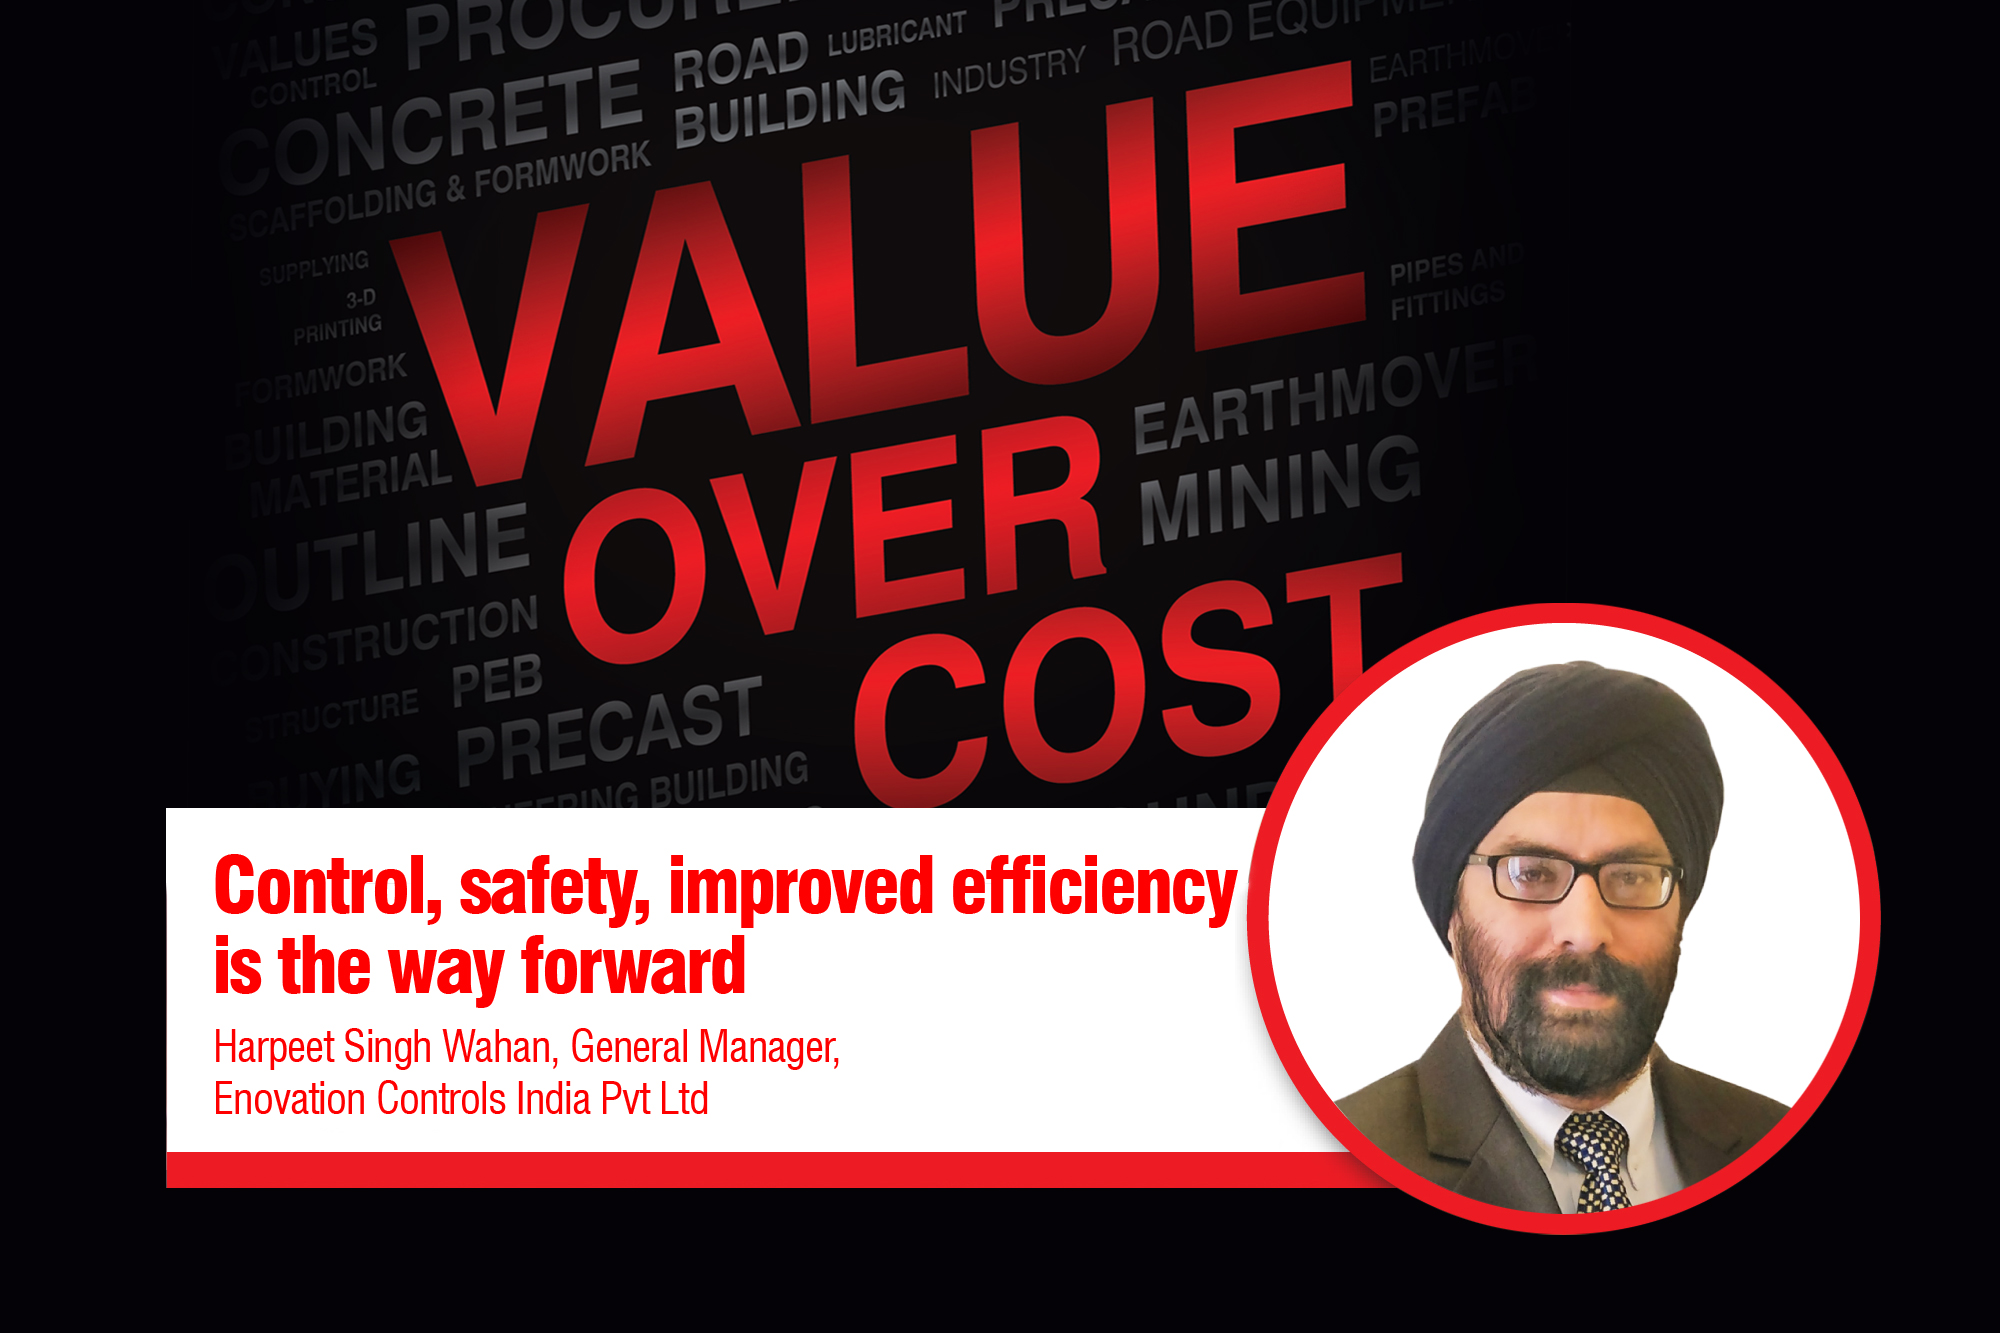 Control, safety, improved efficiency is the way forward